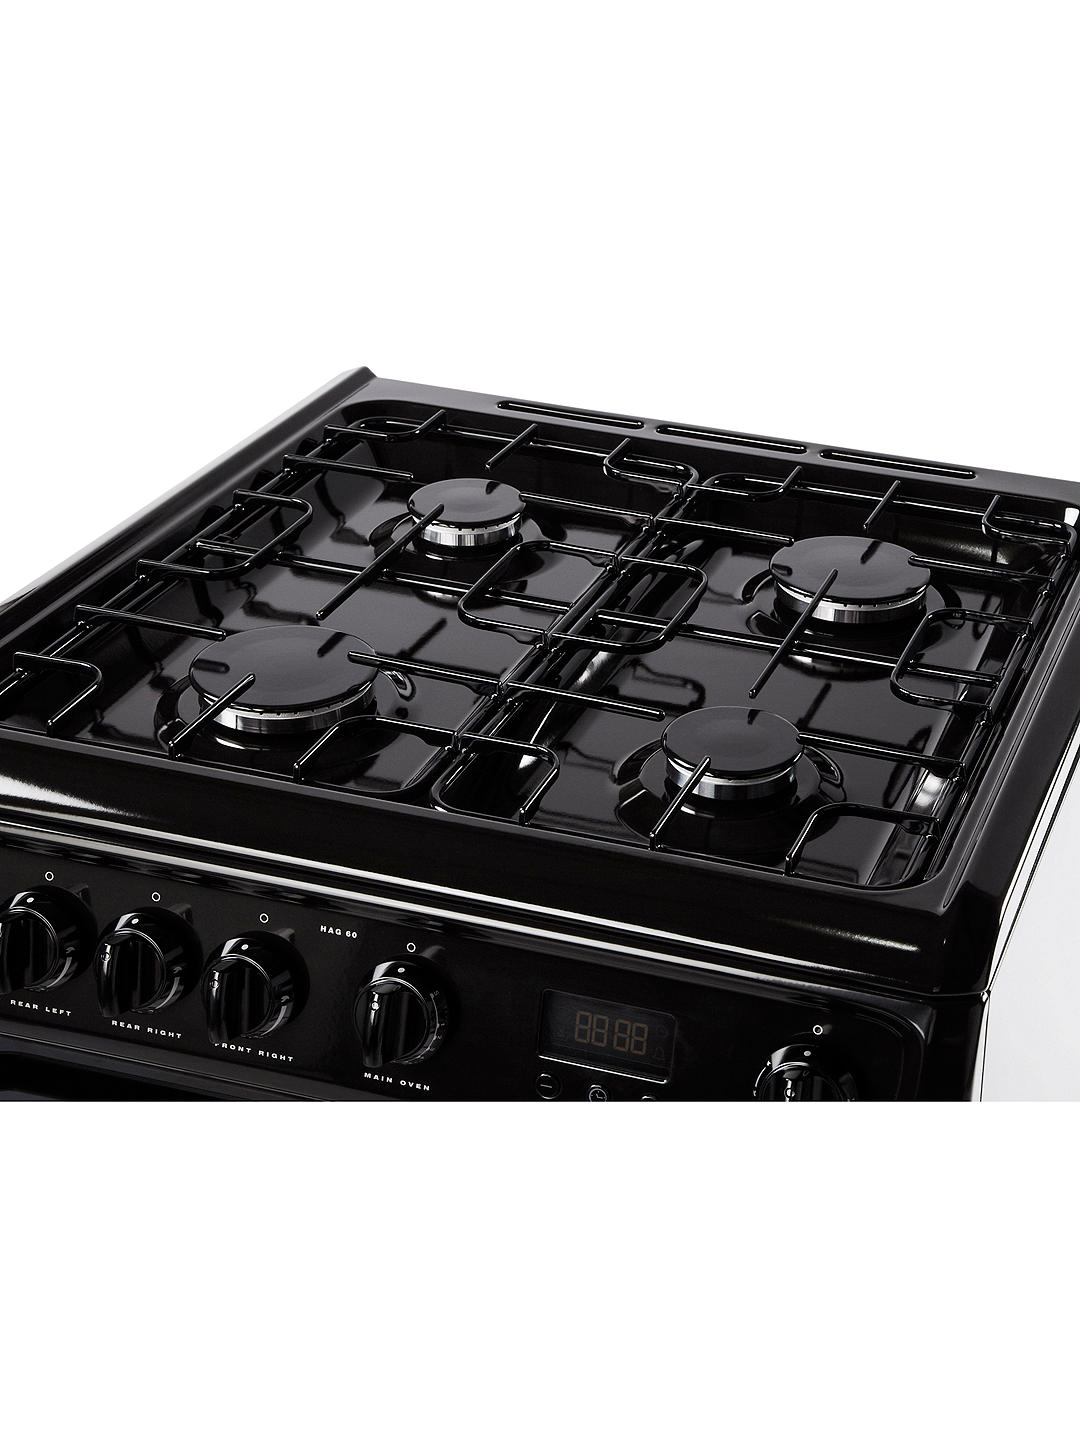 Buy Hotpoint Newstyle HAG60K Gas Cooker, Onyx Black Online at johnlewis.com